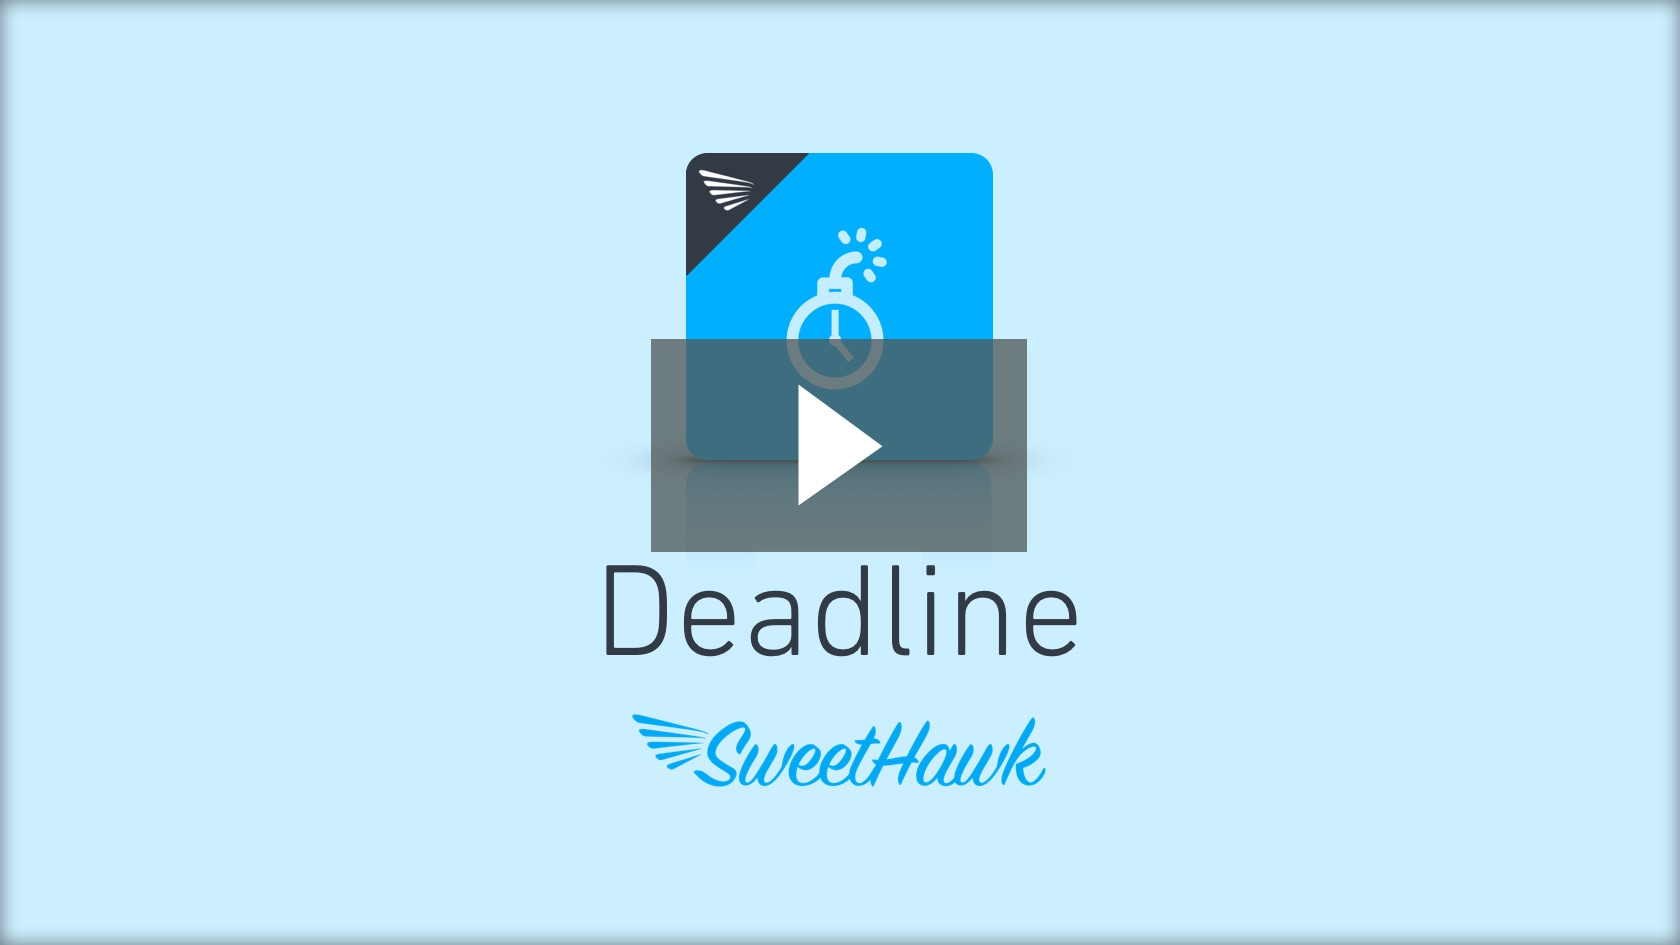 Watch the Deadline app video